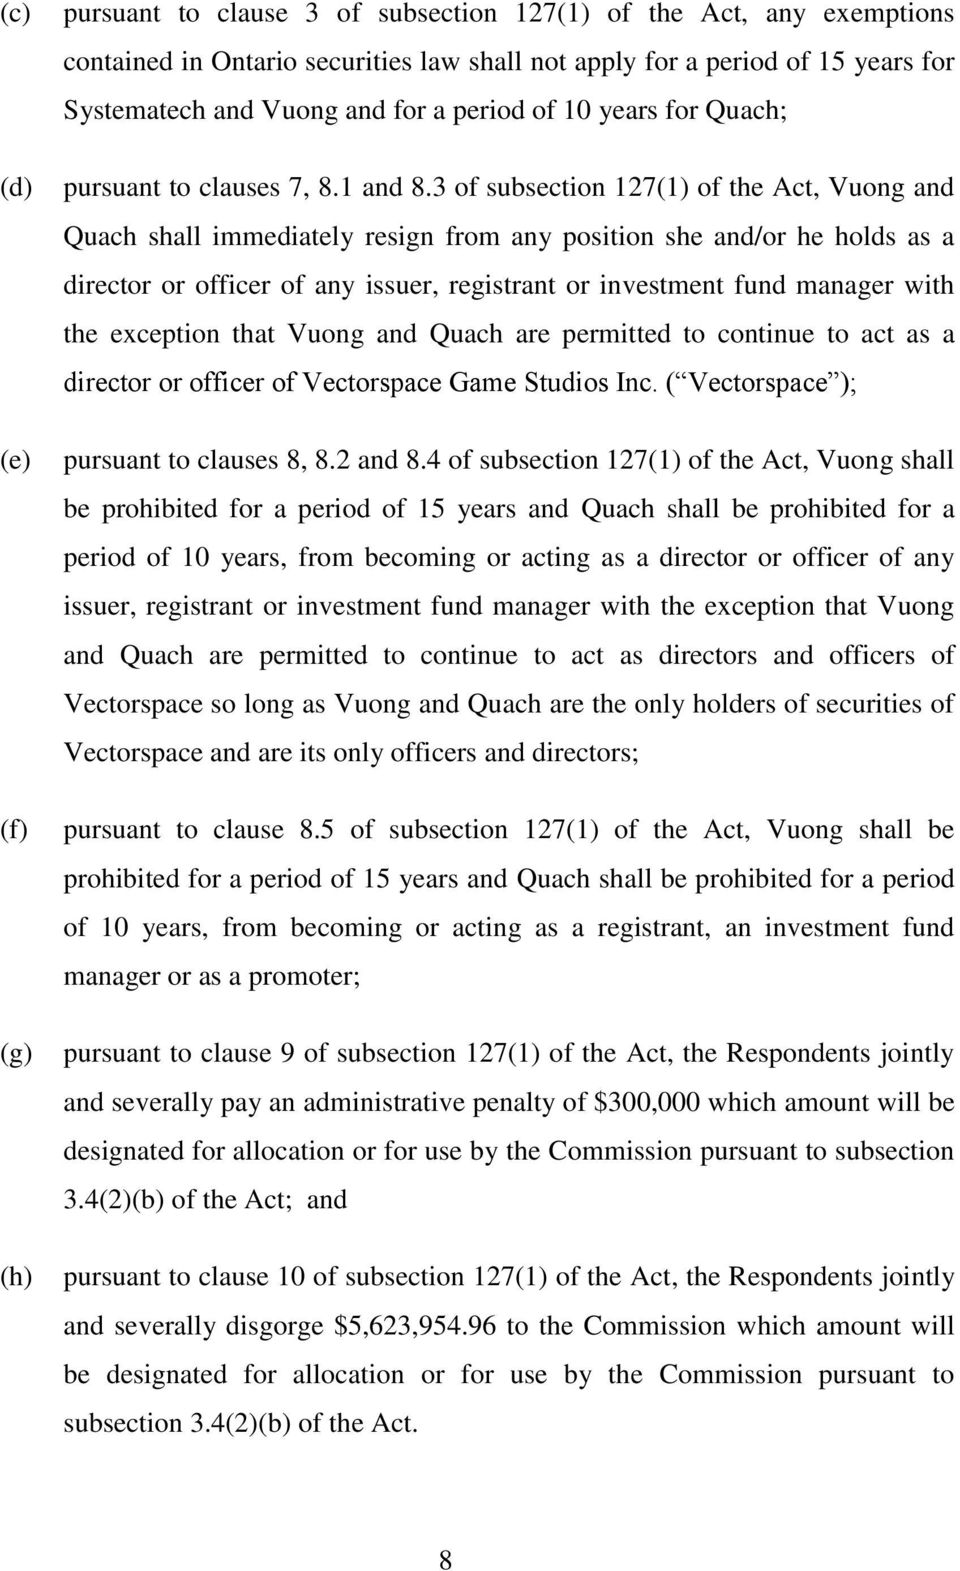 3 of subsection 127(1) of the Act, Vuong and Quach shall immediately resign from any position she and/or he holds as a director or officer of any issuer, registrant or investment fund manager with